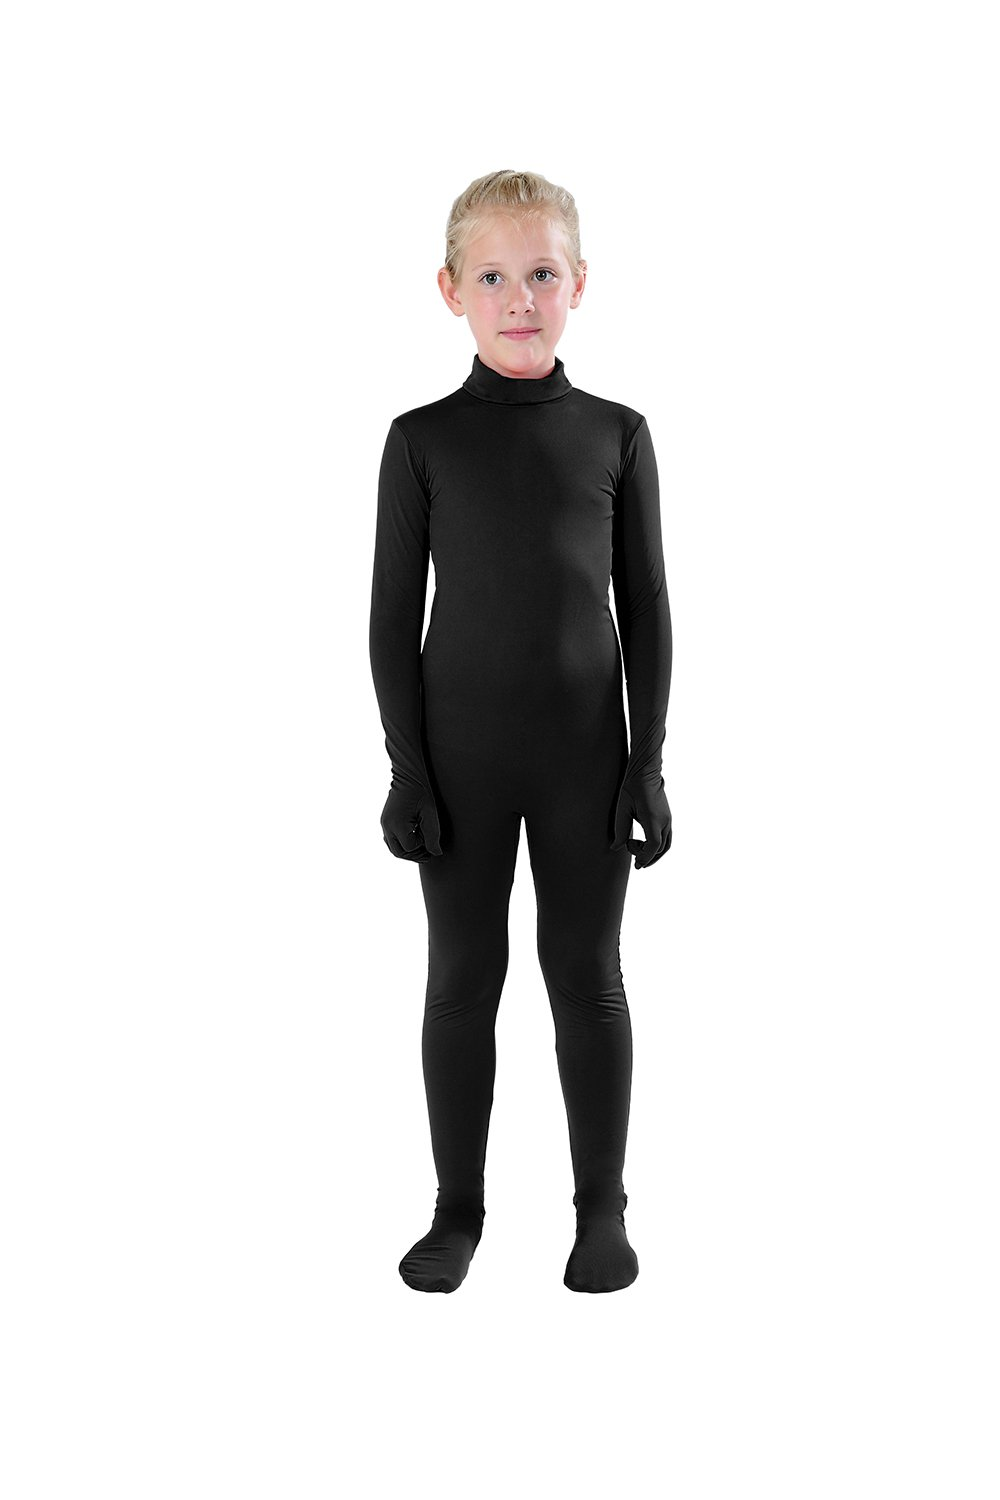 - 51d8VCkQX4L - Full Bodysuit Kids Dancewear Solid Color Lycra Spandex Zentai Child Unitard